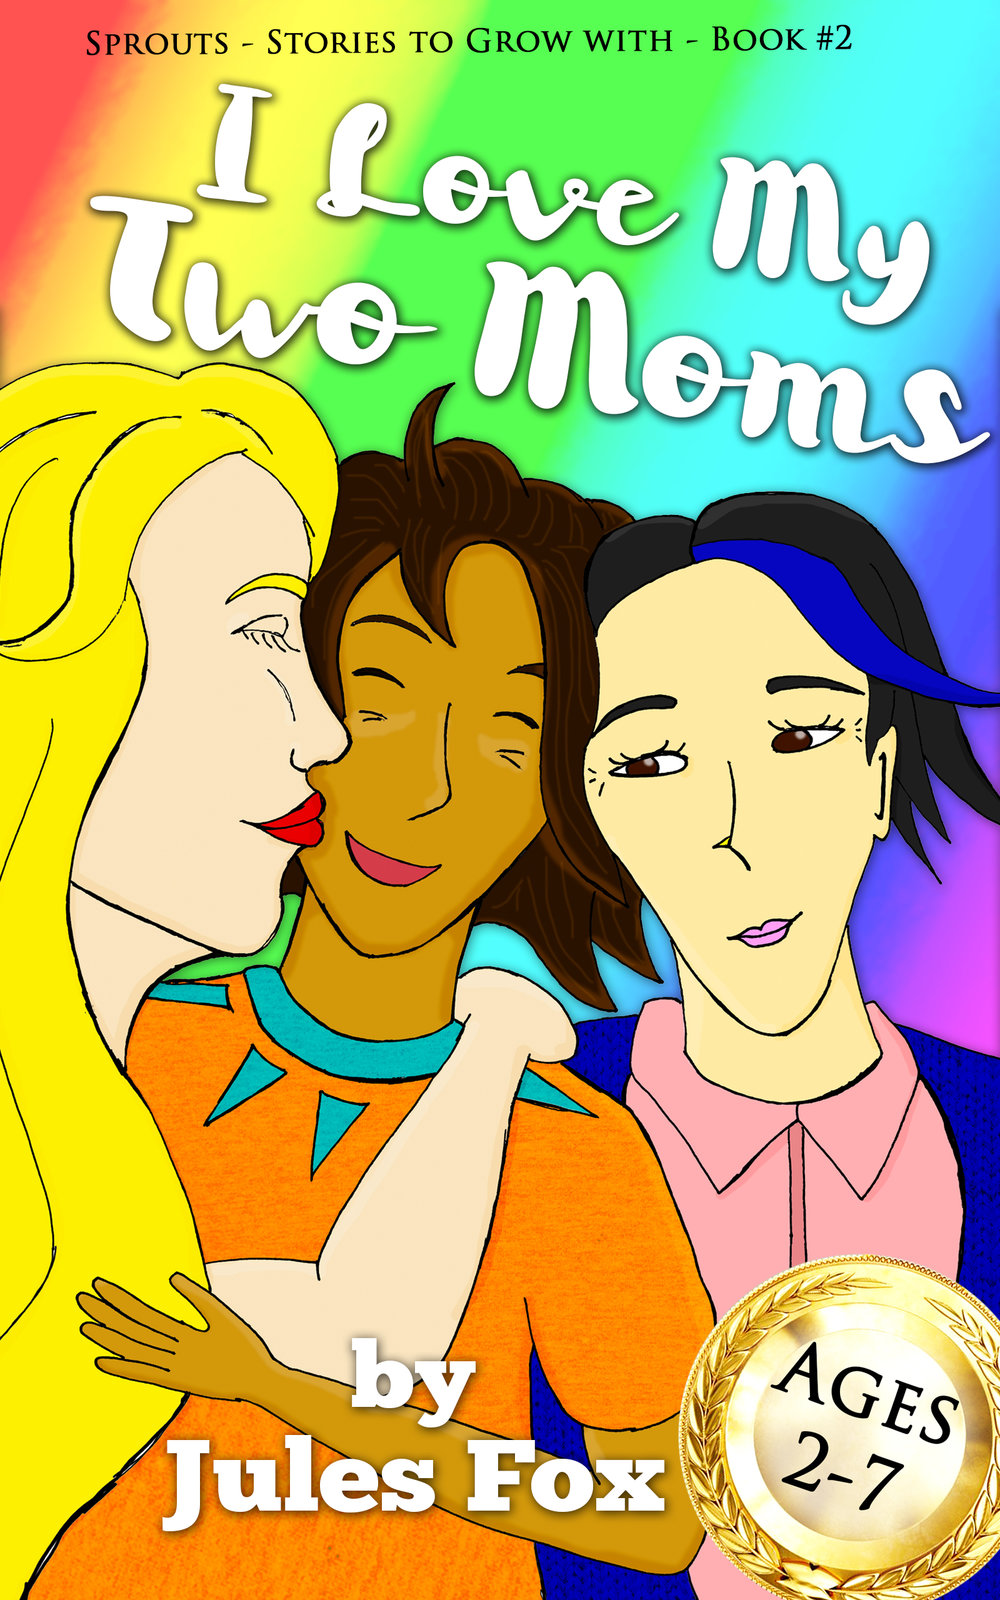 I Love My Two Moms    Kalen is an average mixed-race kid living on the island of Kauai, Hawaii. He really loves both his moms, and his estranged dad who was asked to move away. This is his story about what family means to him.  From stand up paddling past coconut palms with both his moms, to video chatting with his dad, who has a new family, learn about Kalen's unique family as we explore the diverse relationships in the world!  For children ages 2-7.